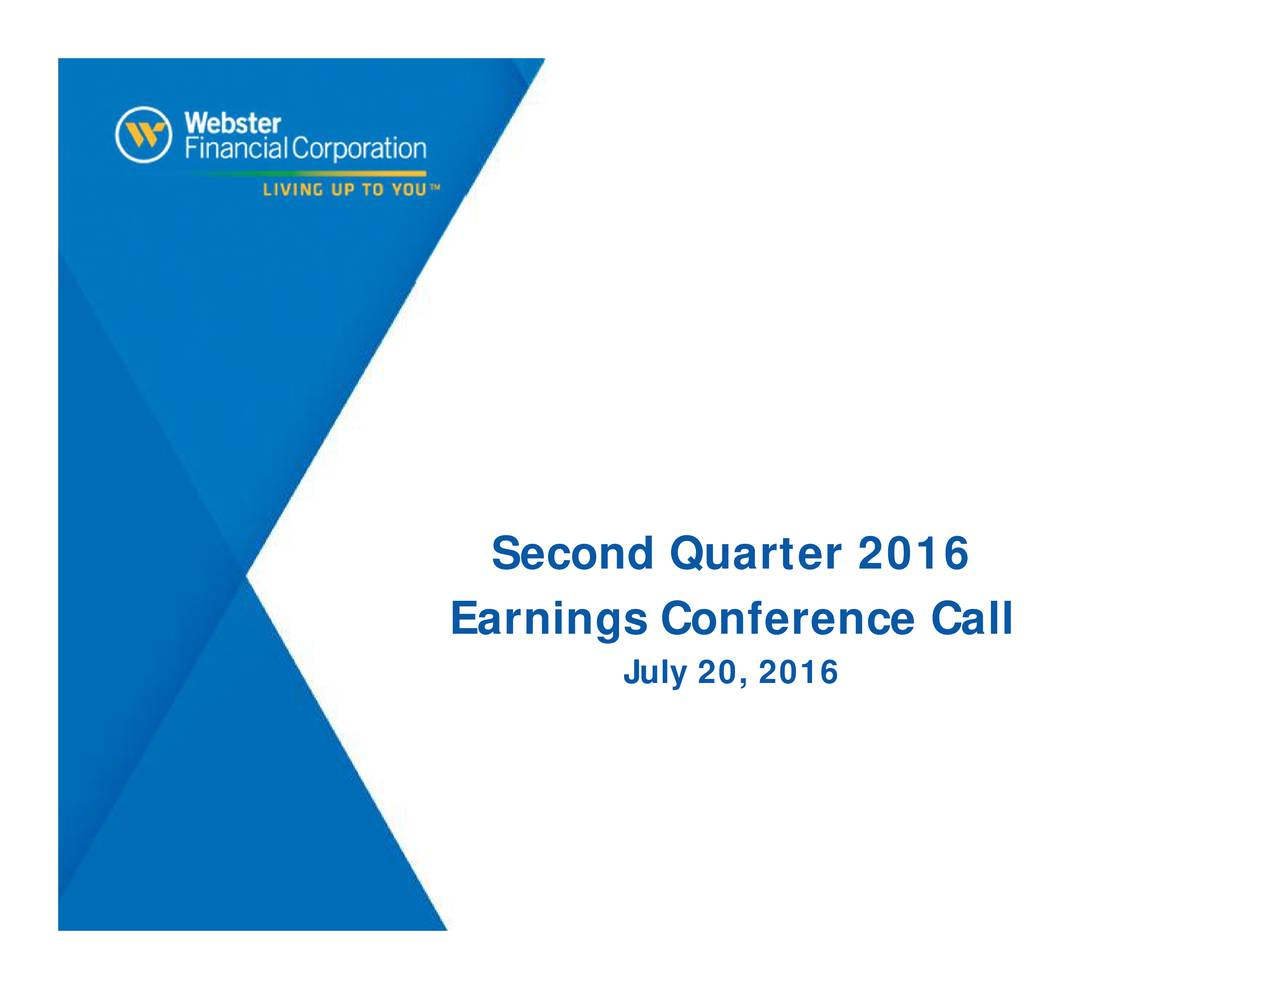 Earnings Conference Call July 20, 2016